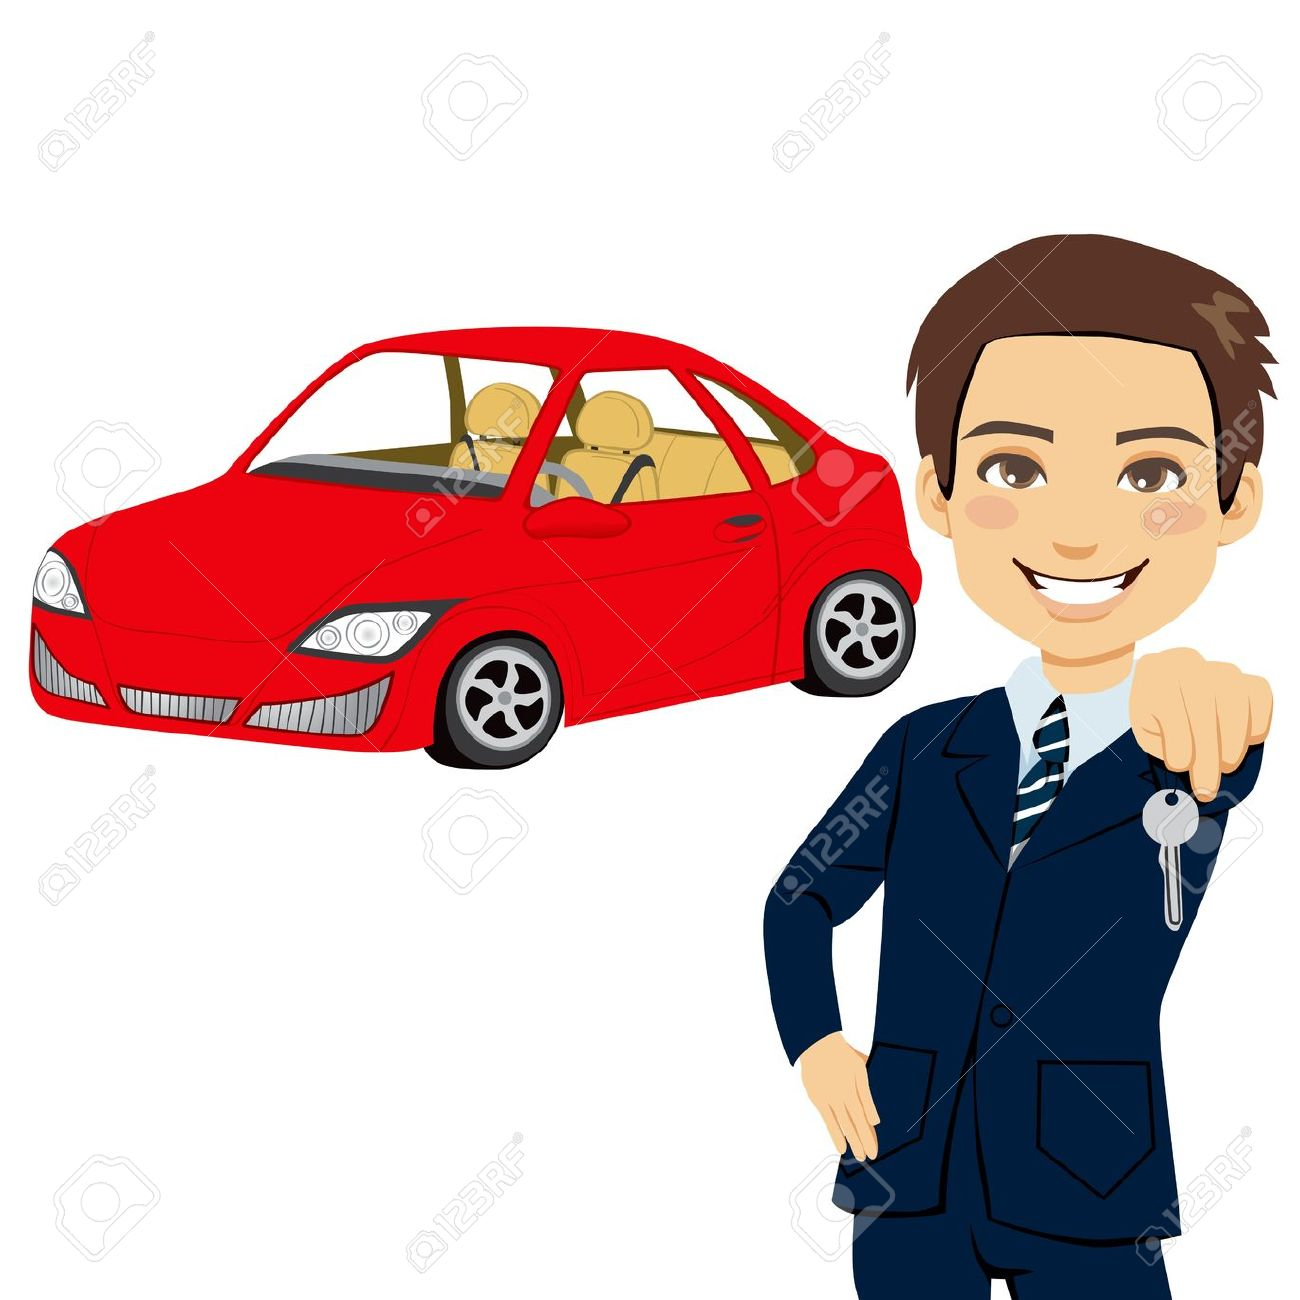 Brand new red car clipart.